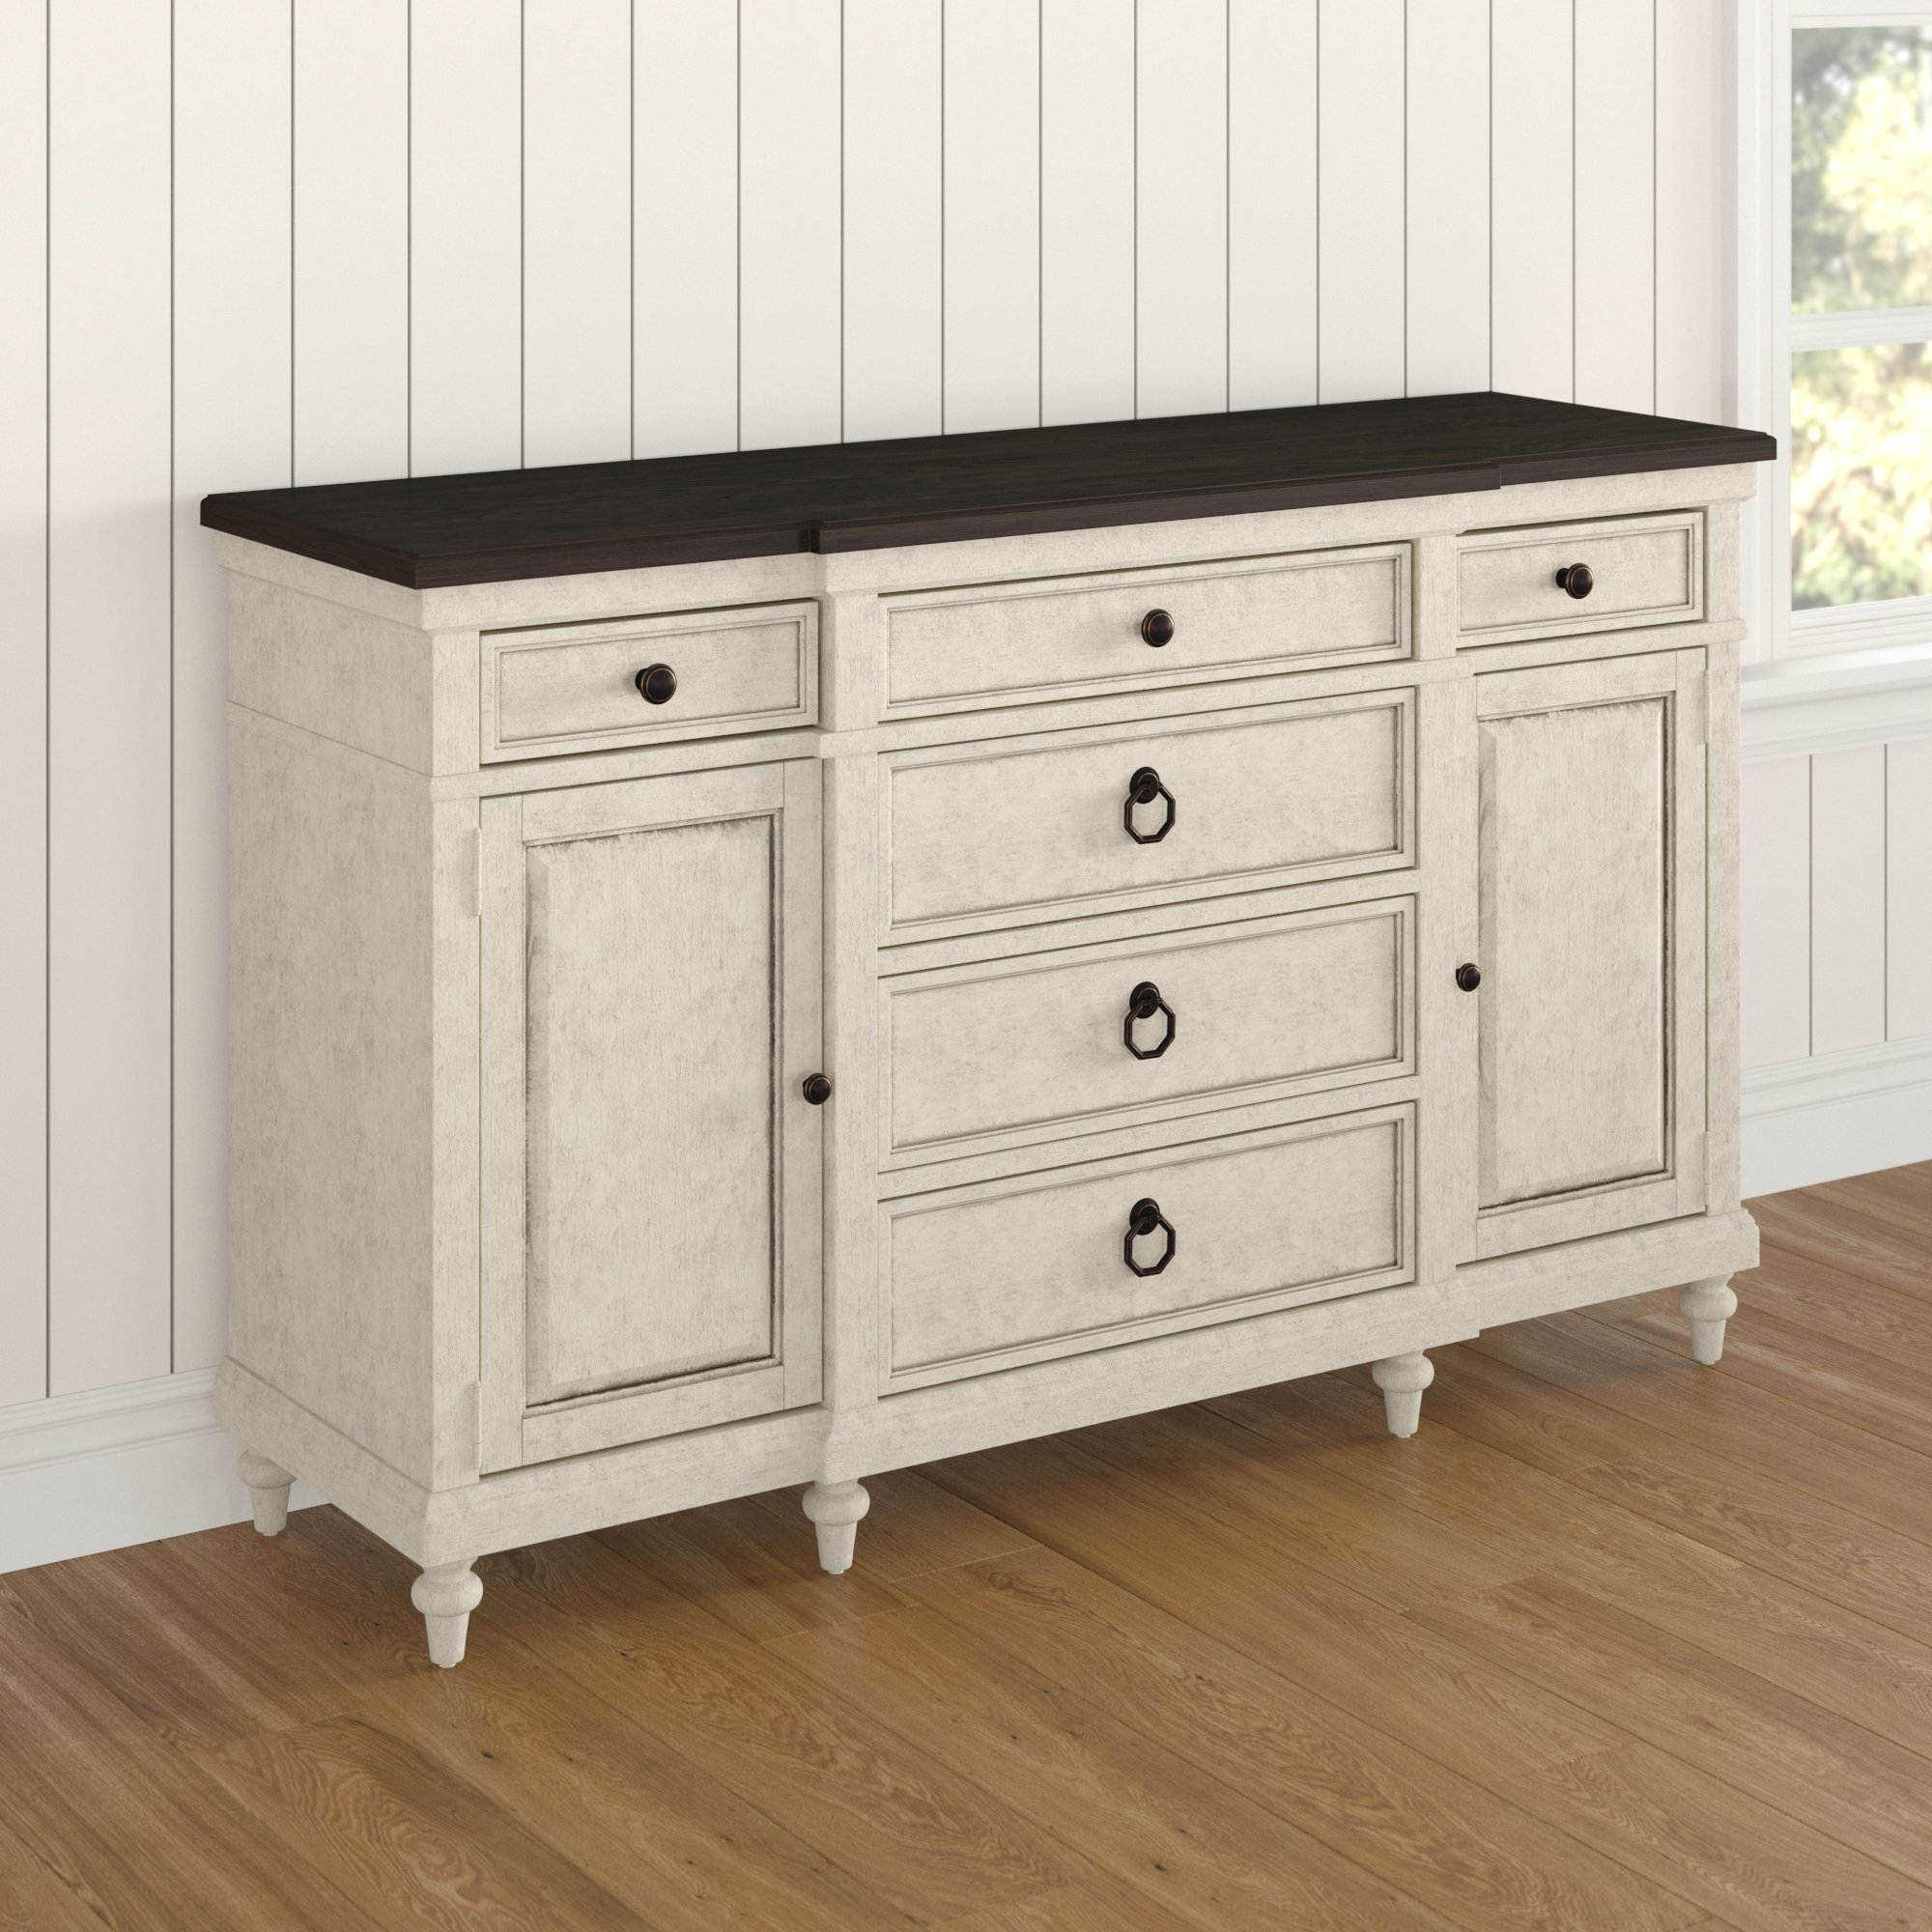 Ornithogale Sideboard In Payton Serving Sideboards (View 15 of 20)